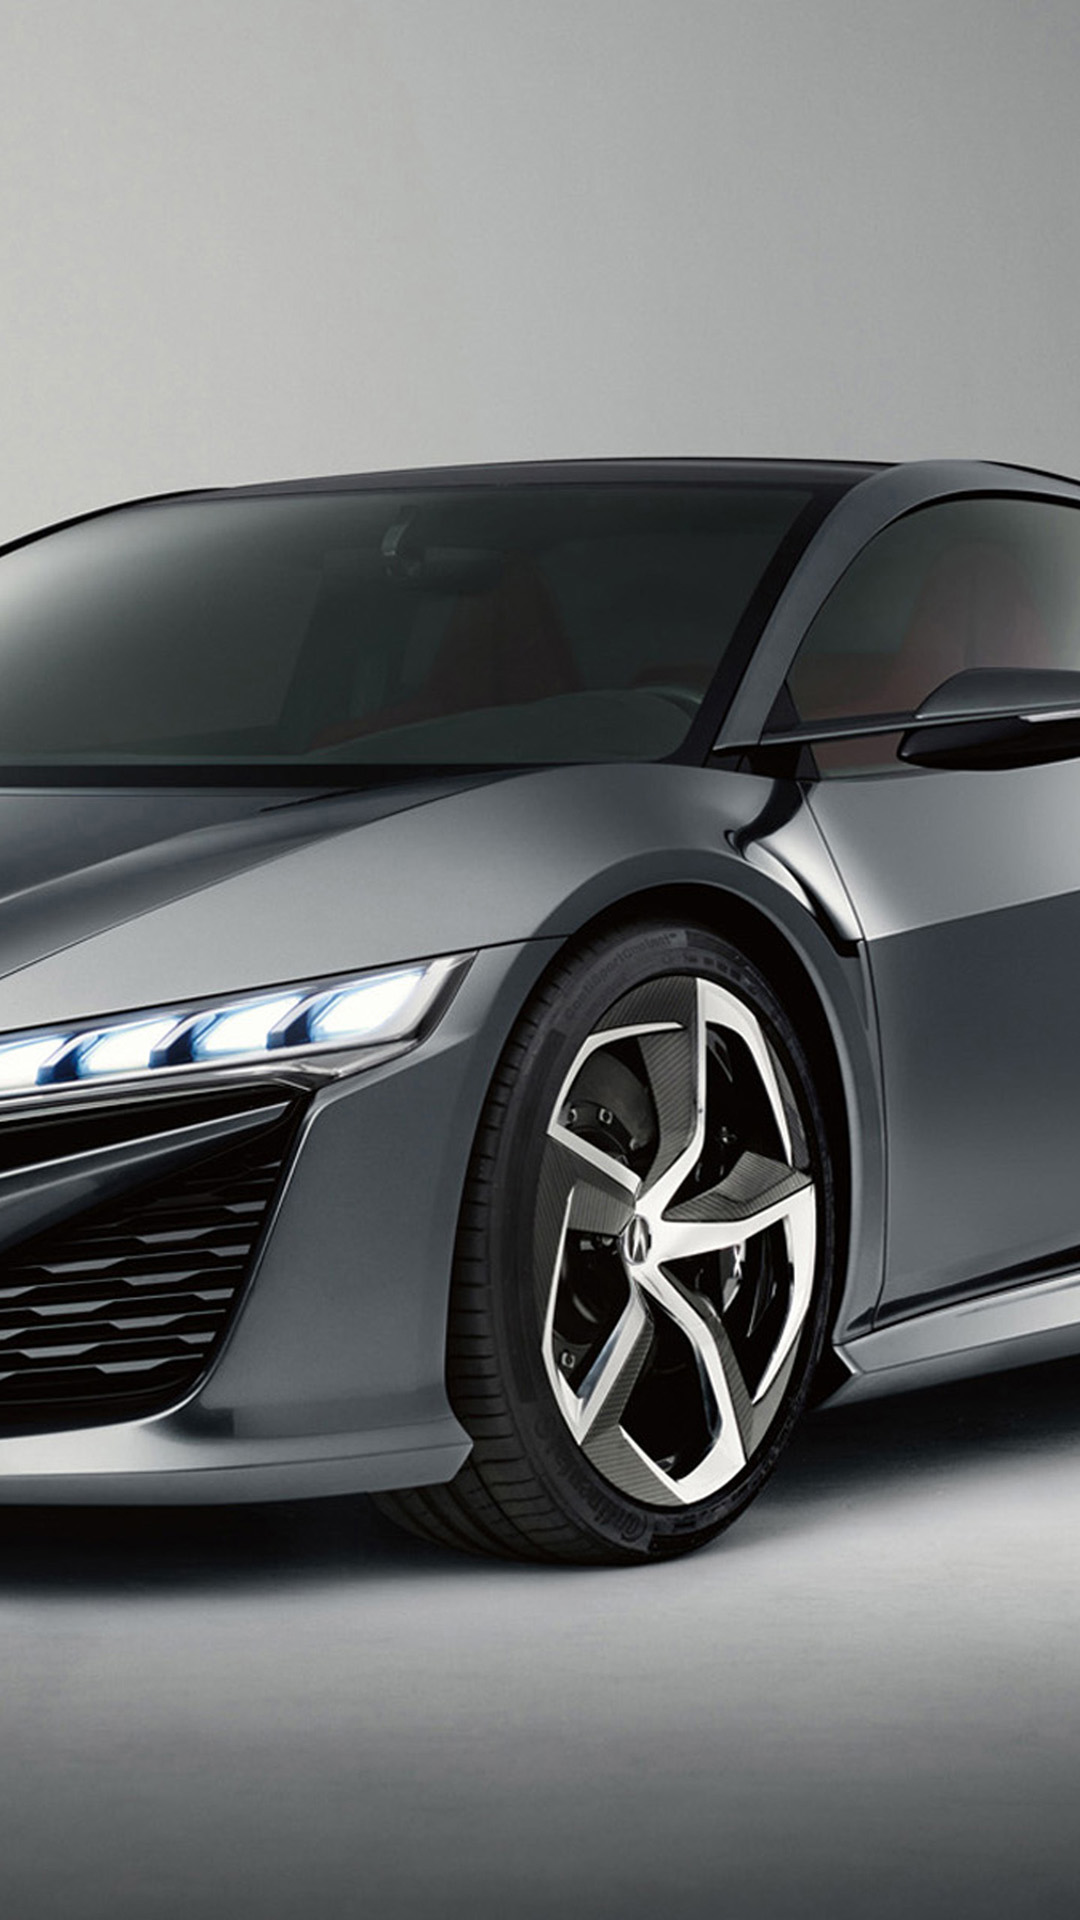 Acura Sports Car Android wallpaper